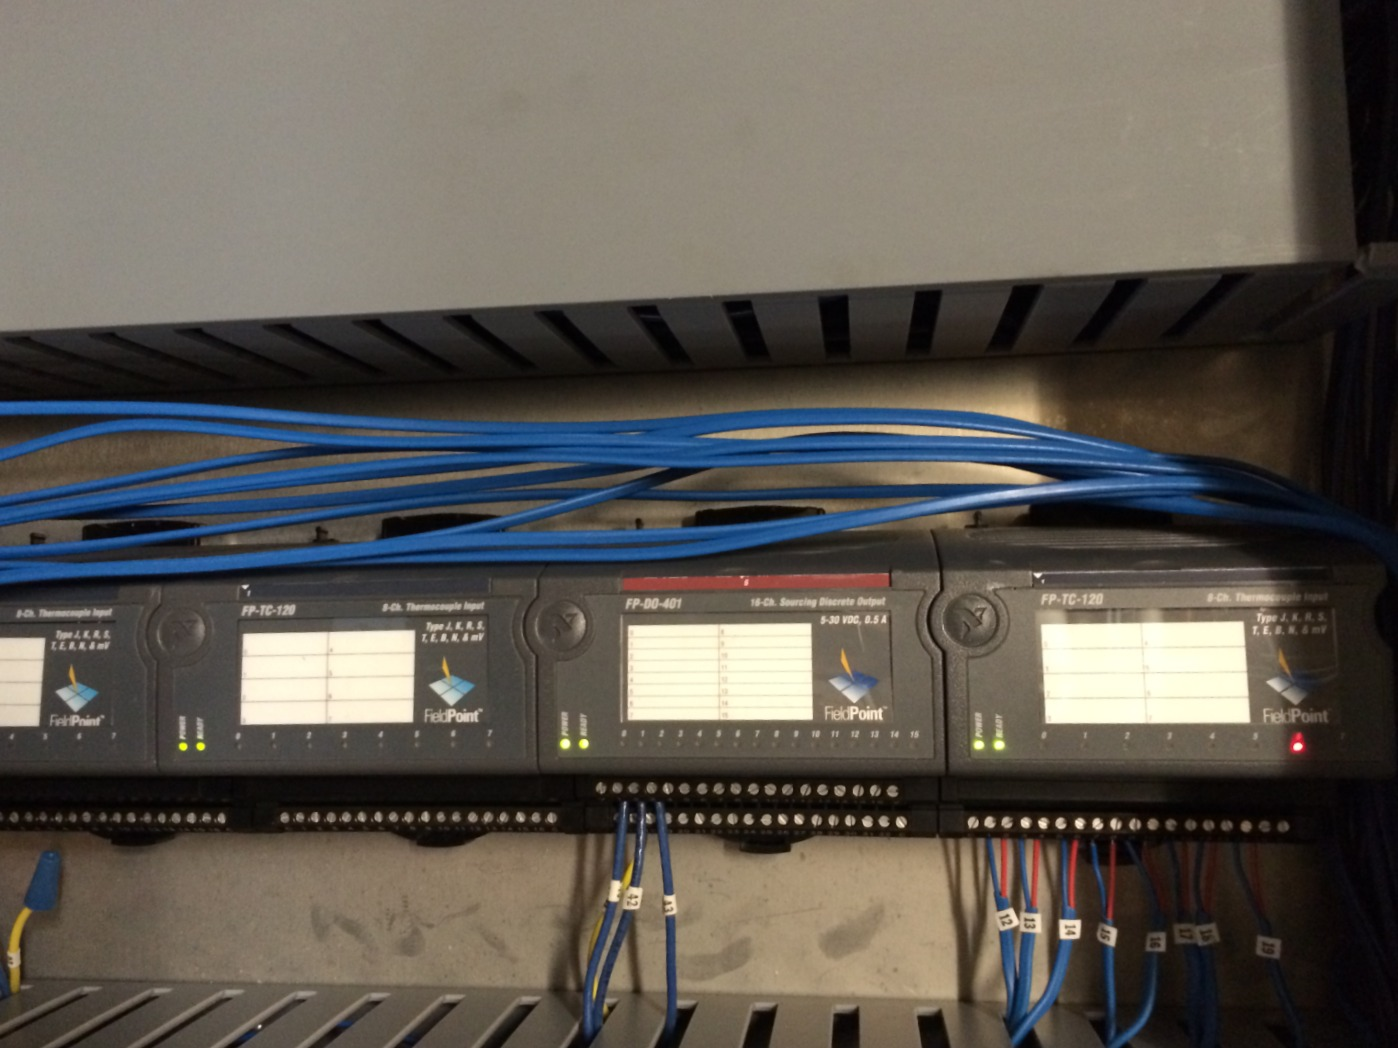 FieldPoint Replacement for an Array of Freezers